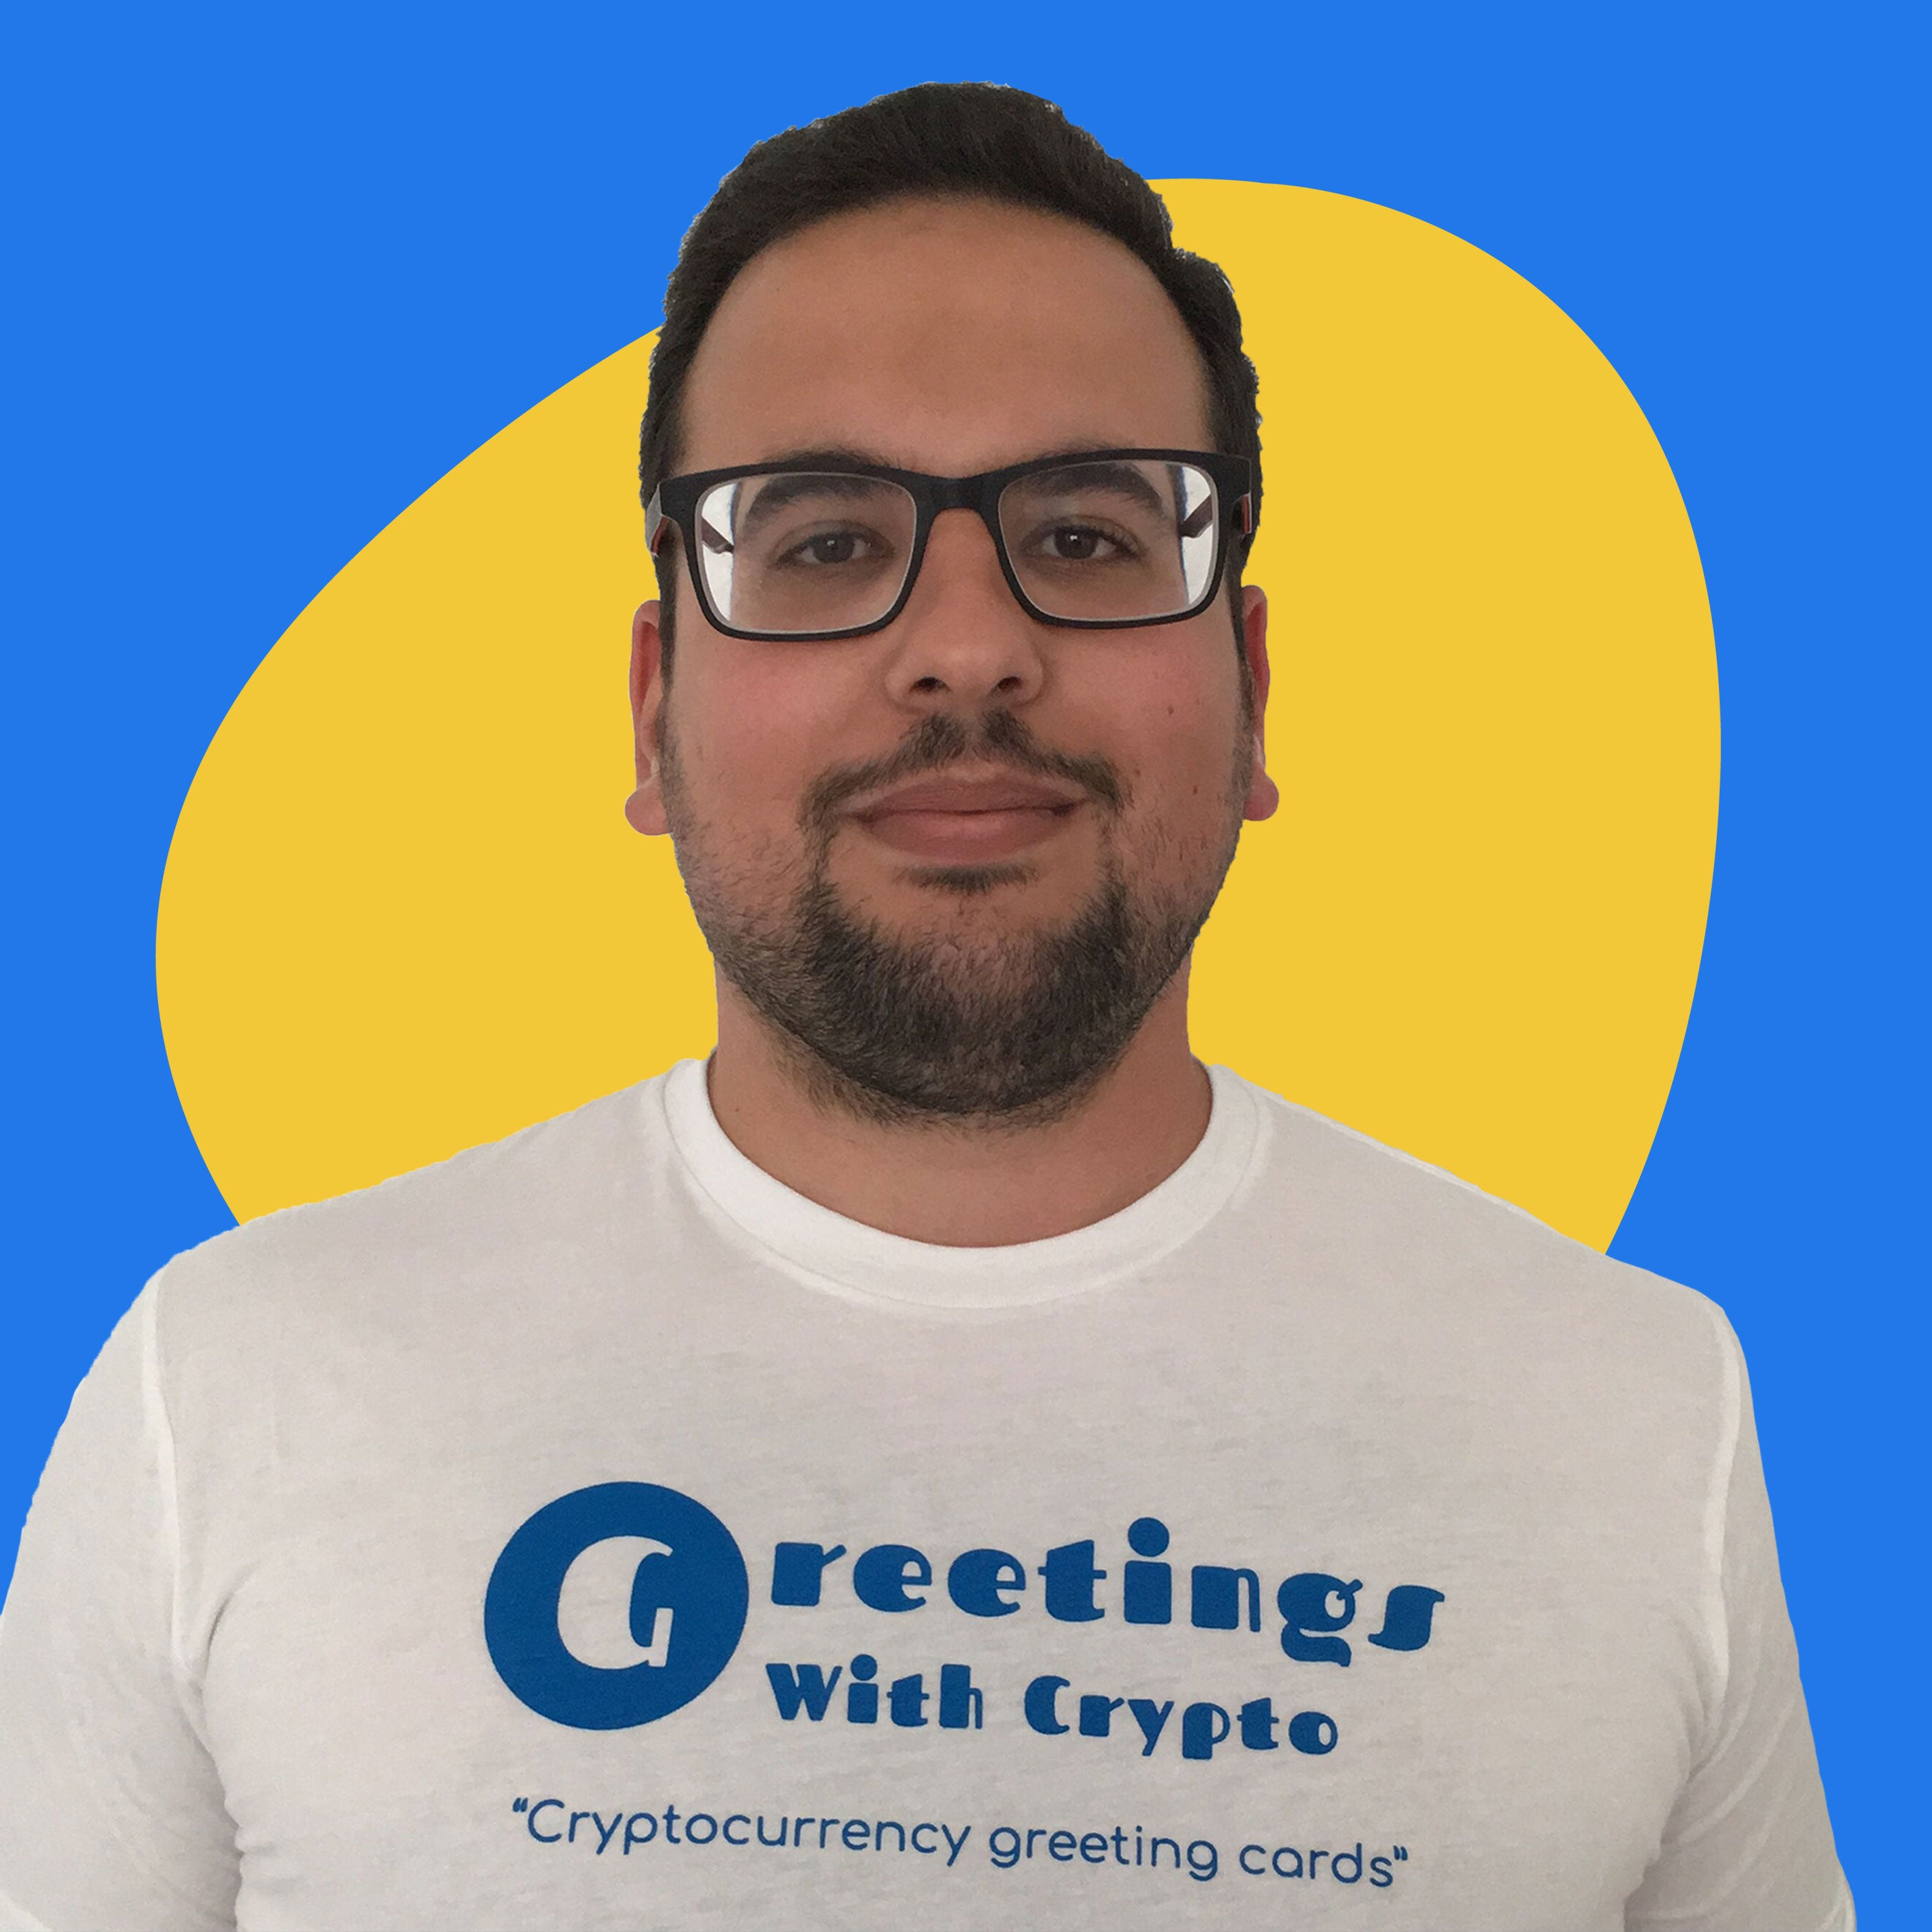 Greetings With Crypto review